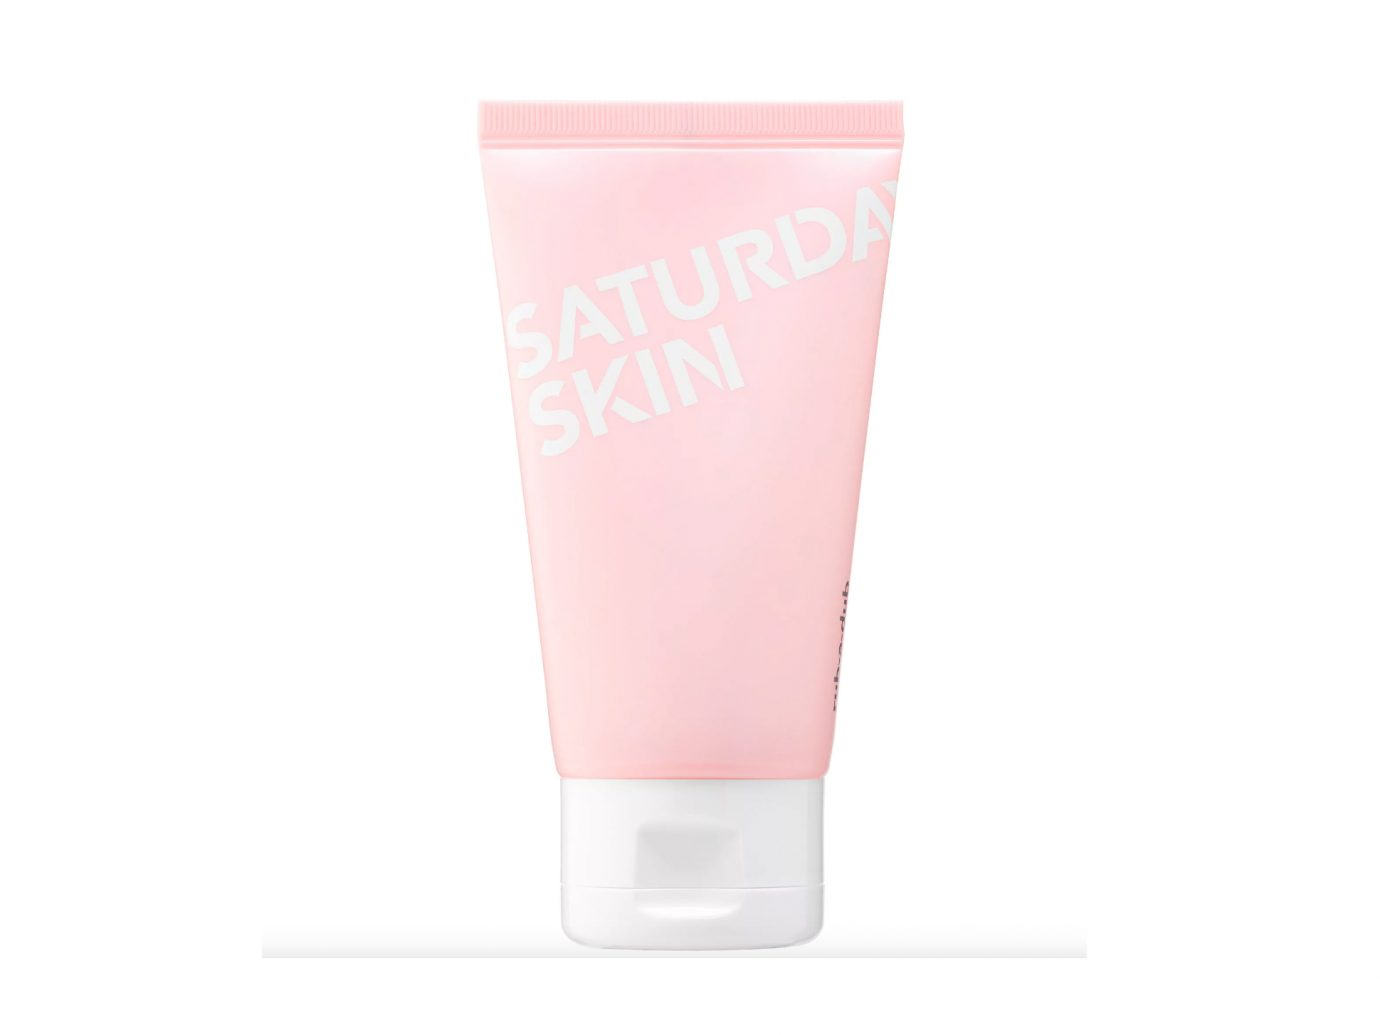 Korean beauty product Saturday Skin Rub-a-Dub Refining Peel Gel